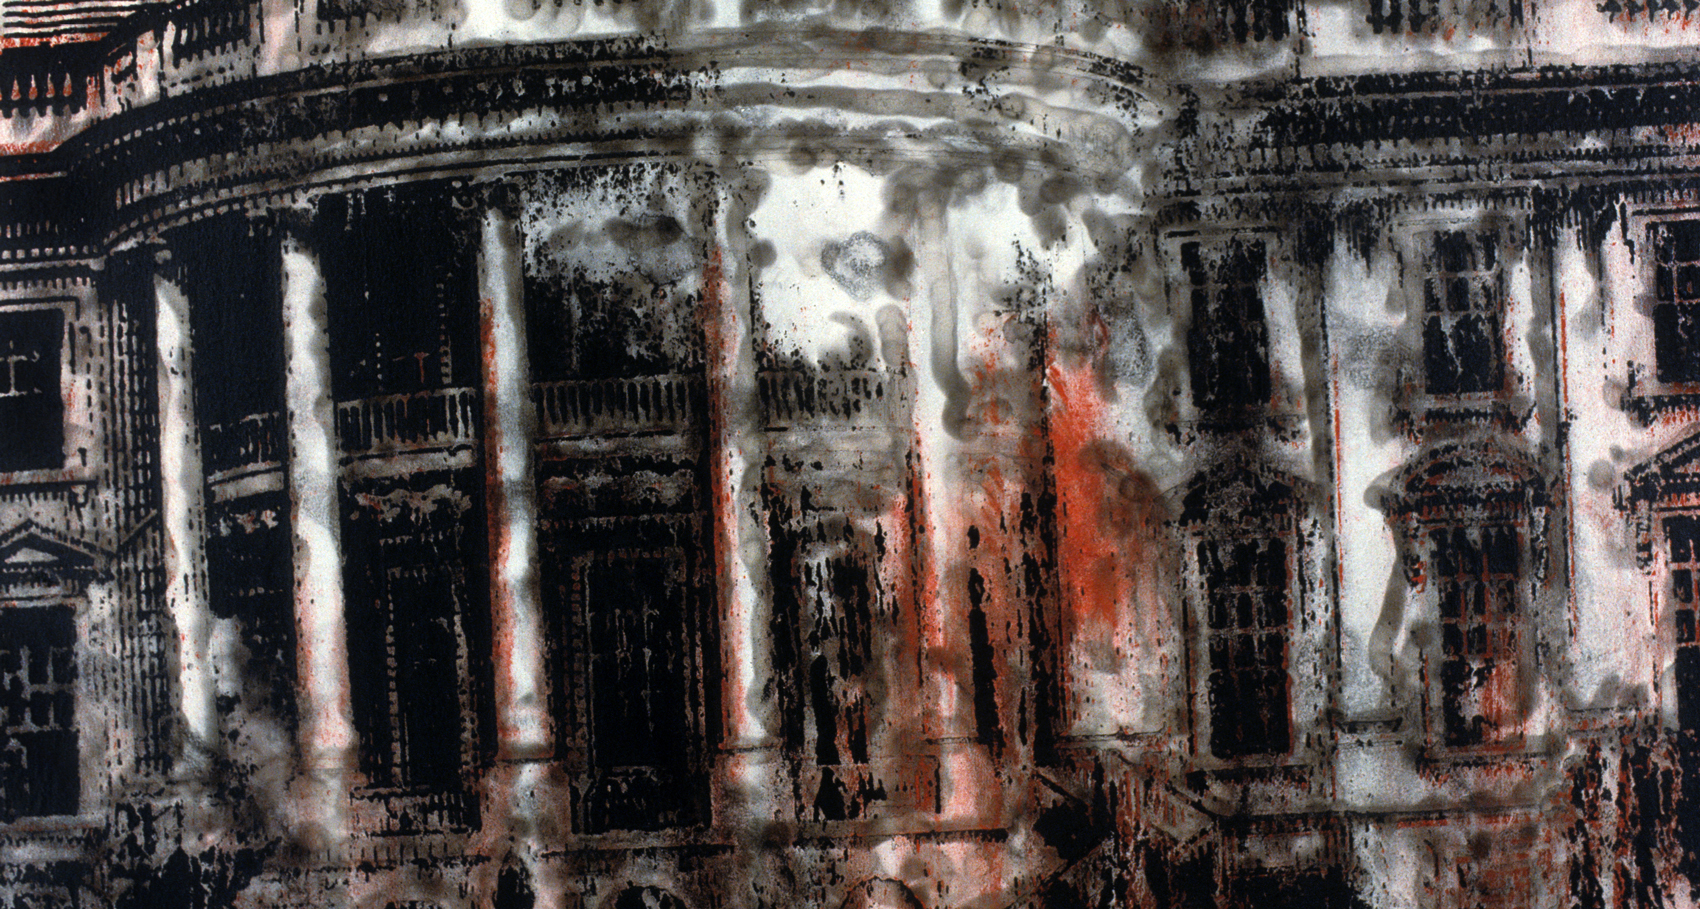 """Withstanding Deadly Attack From Within. Acrylic and smoke on canvas, 32"""" x 44,"""" 1992."""